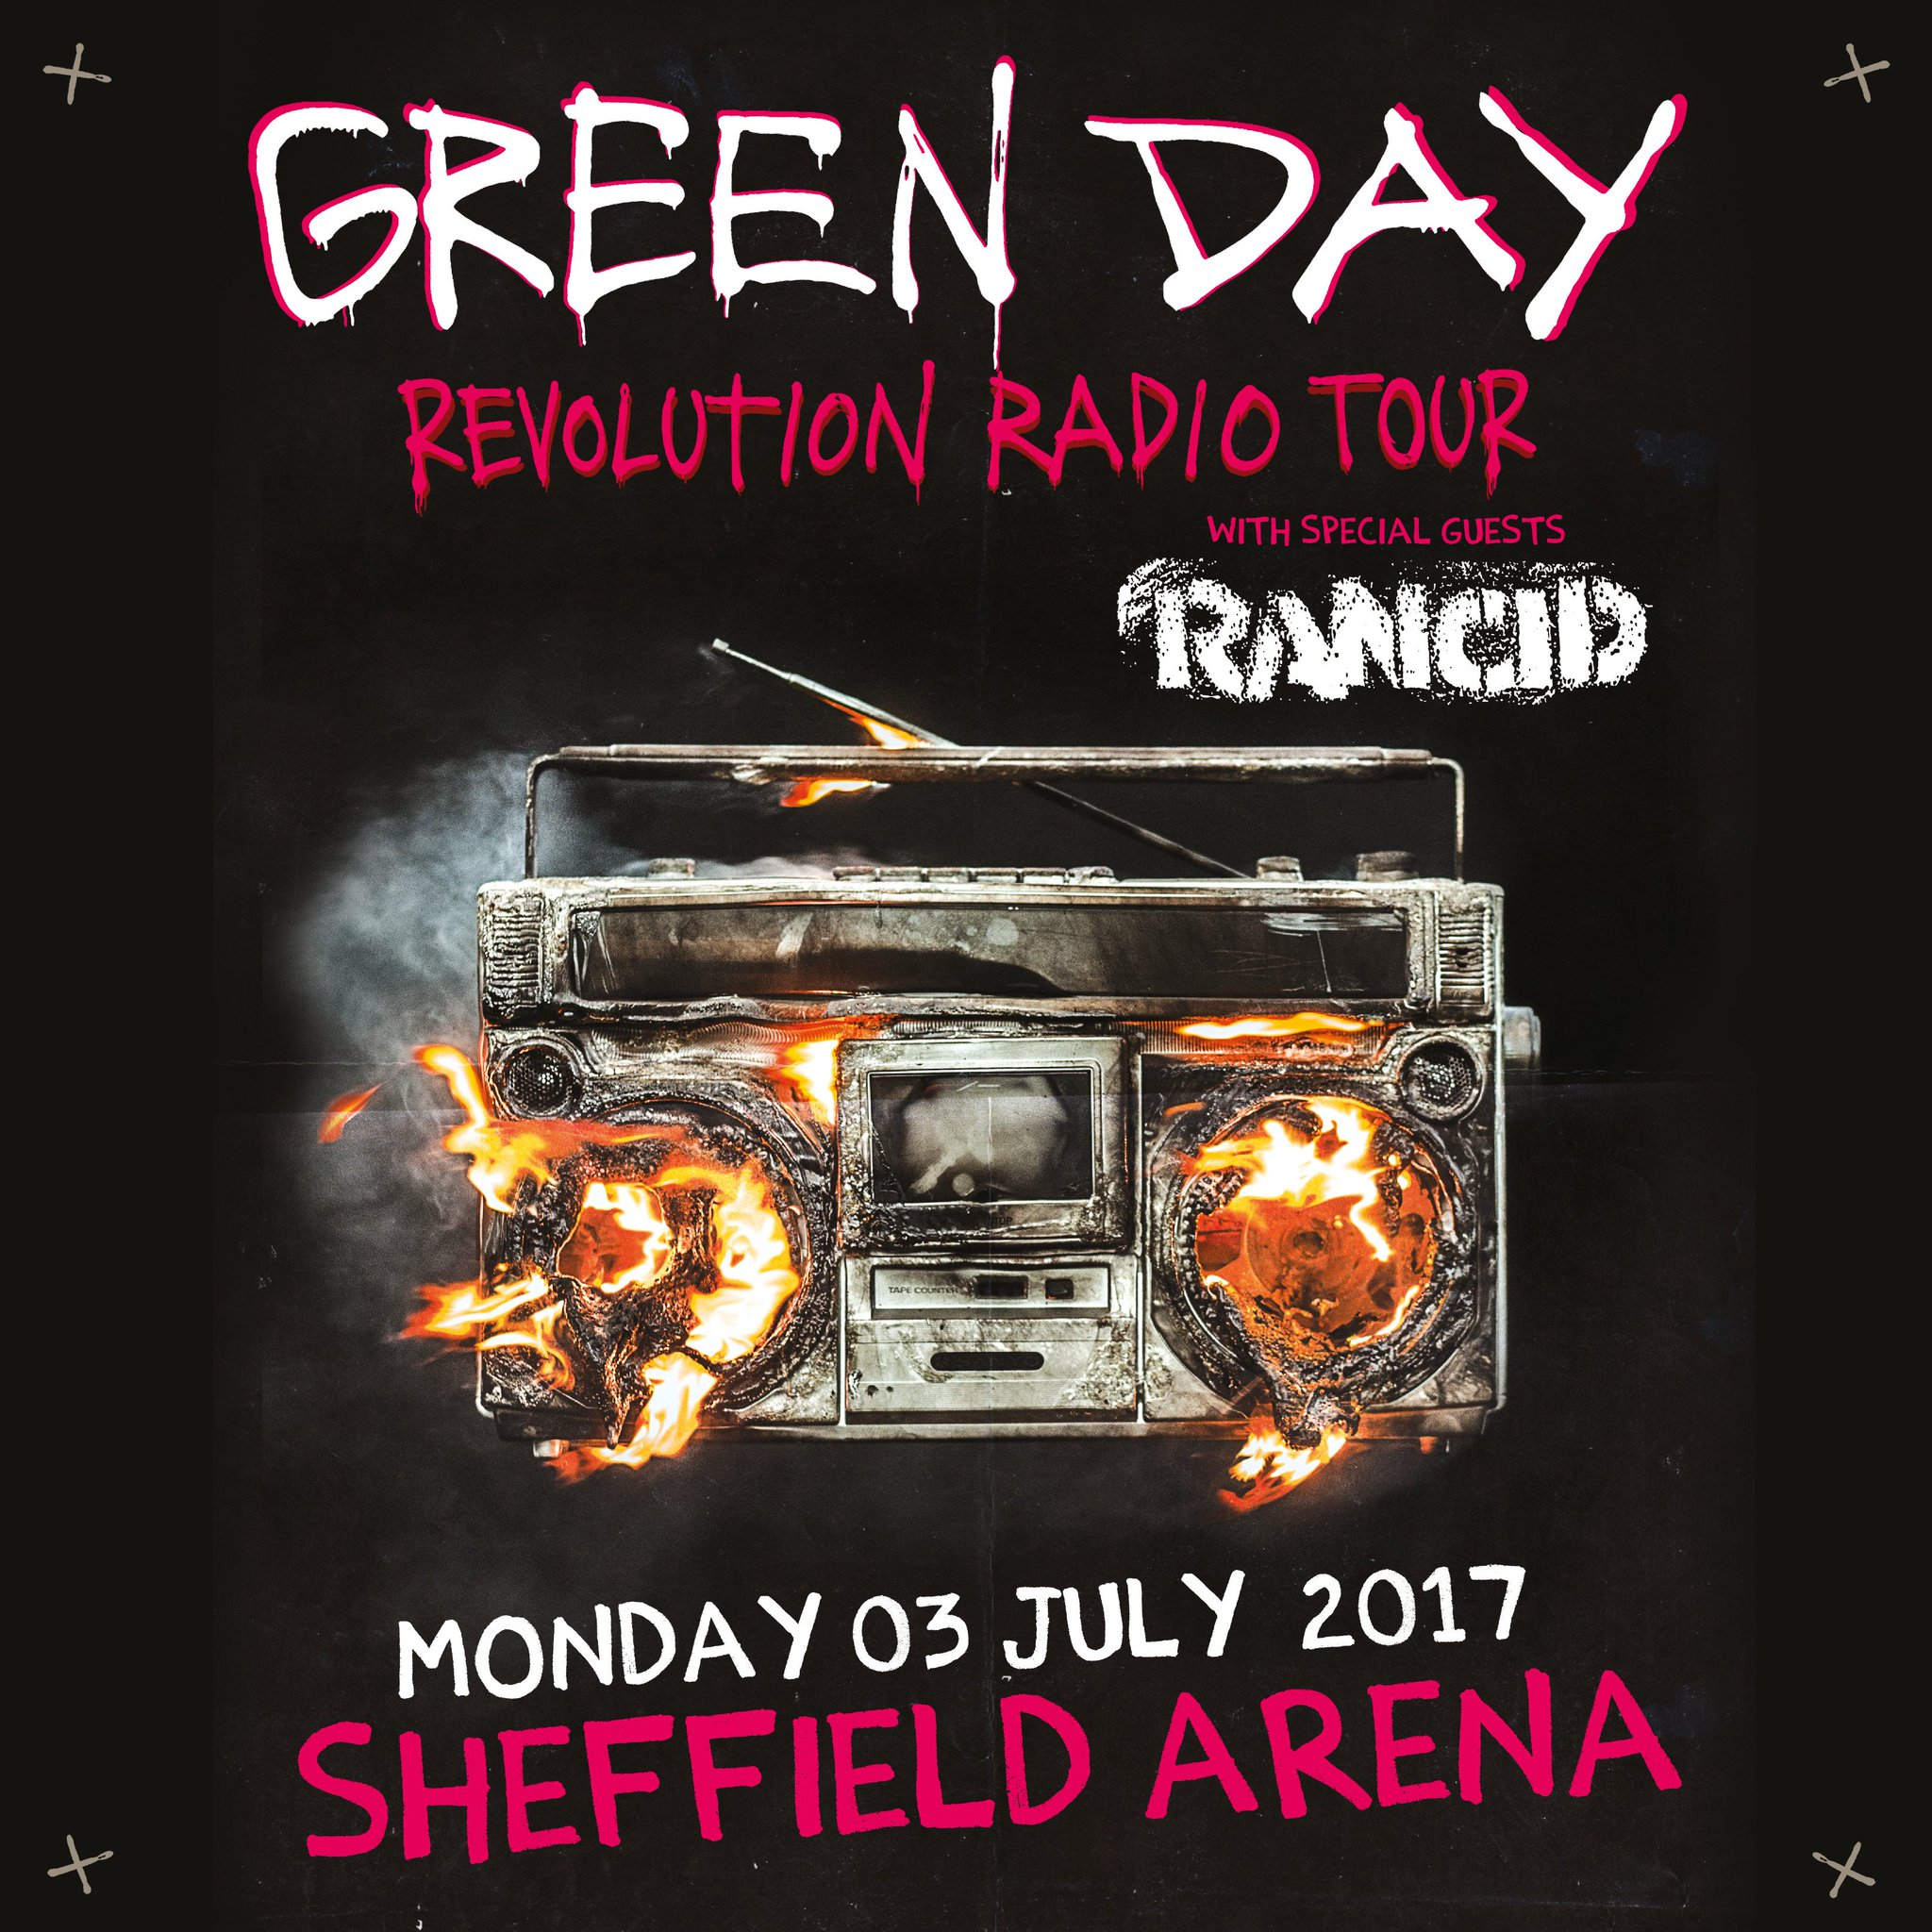 Sheffield Arena, UK - Monday 03 July 217  Tickets on sale 9am Friday 17th Feb: https://t.co/hFdA9PgibH https://t.co/nAHSQWbLdm